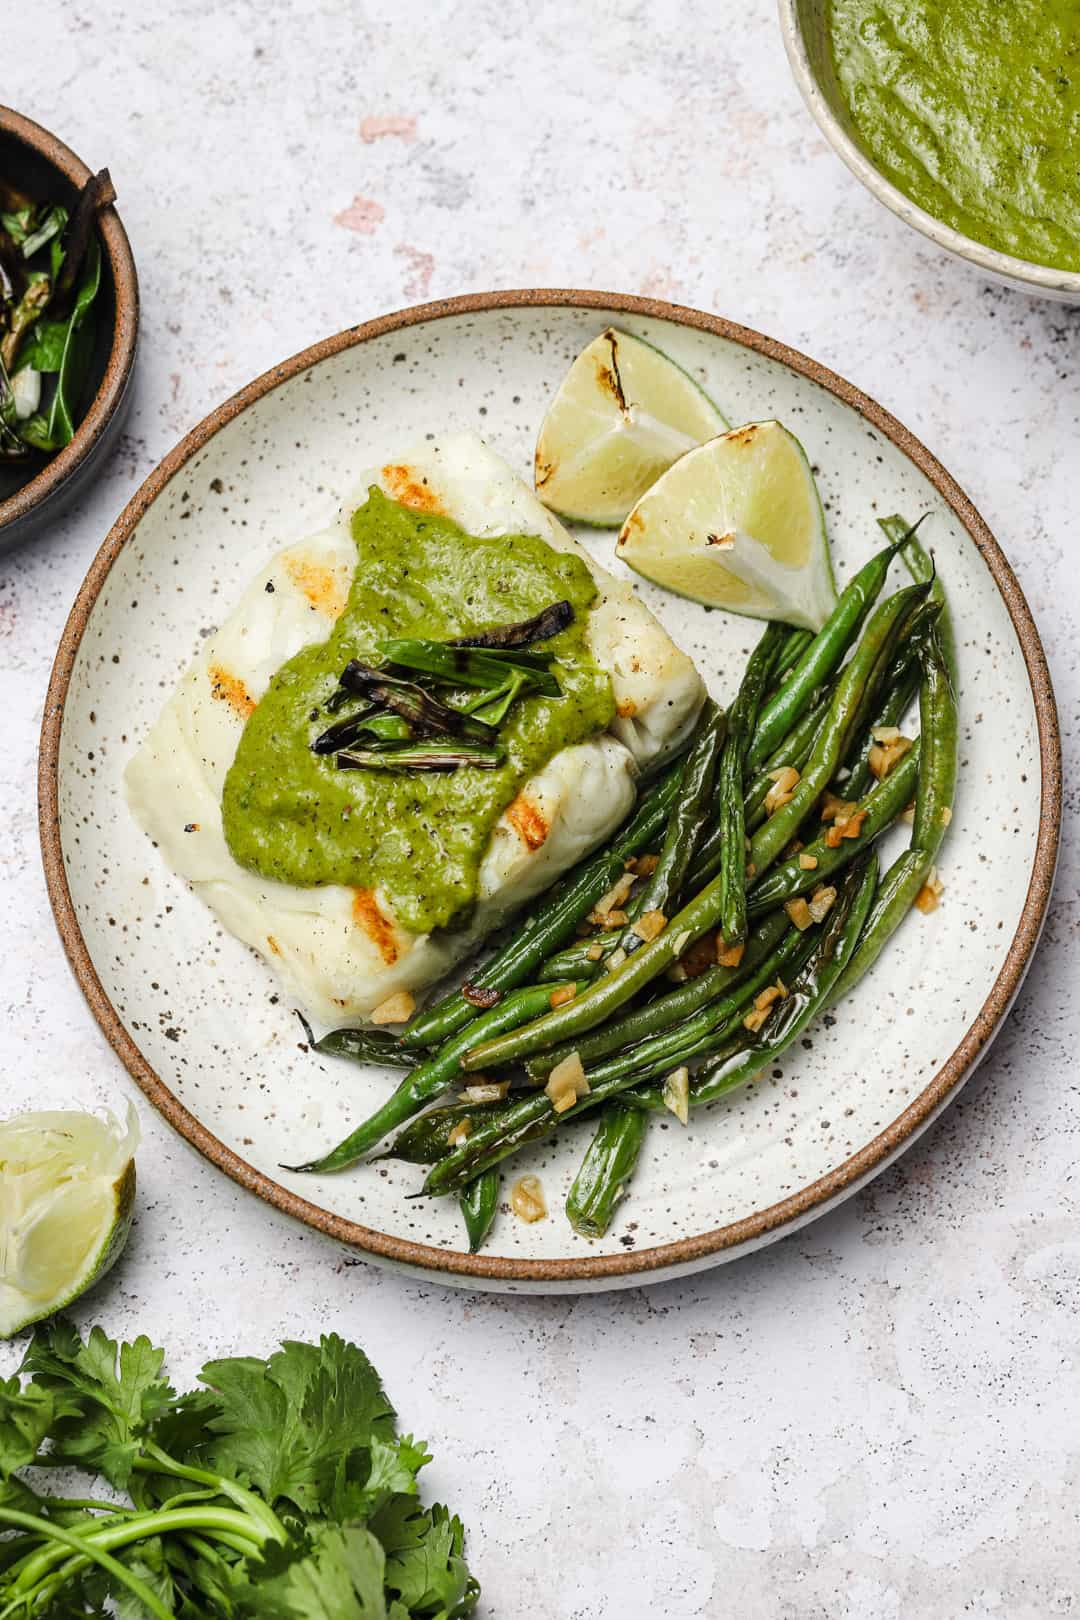 Grilled halibut fillet with scallions